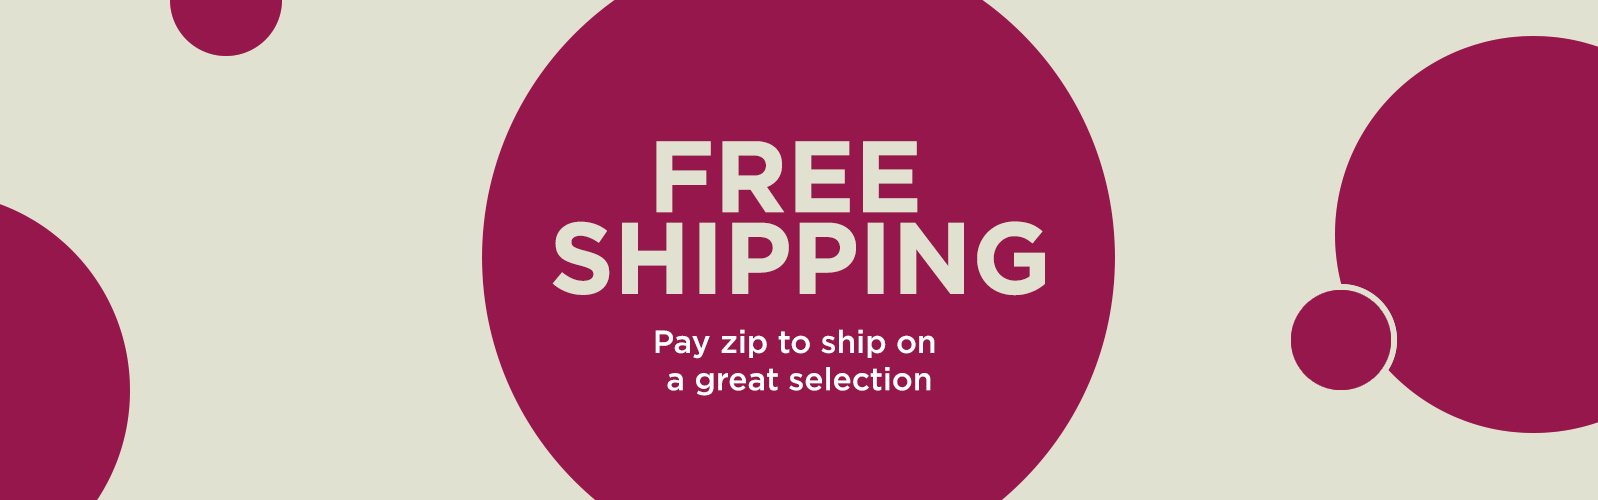 Free Shipping Subhead: Pay zip to ship on a great selection